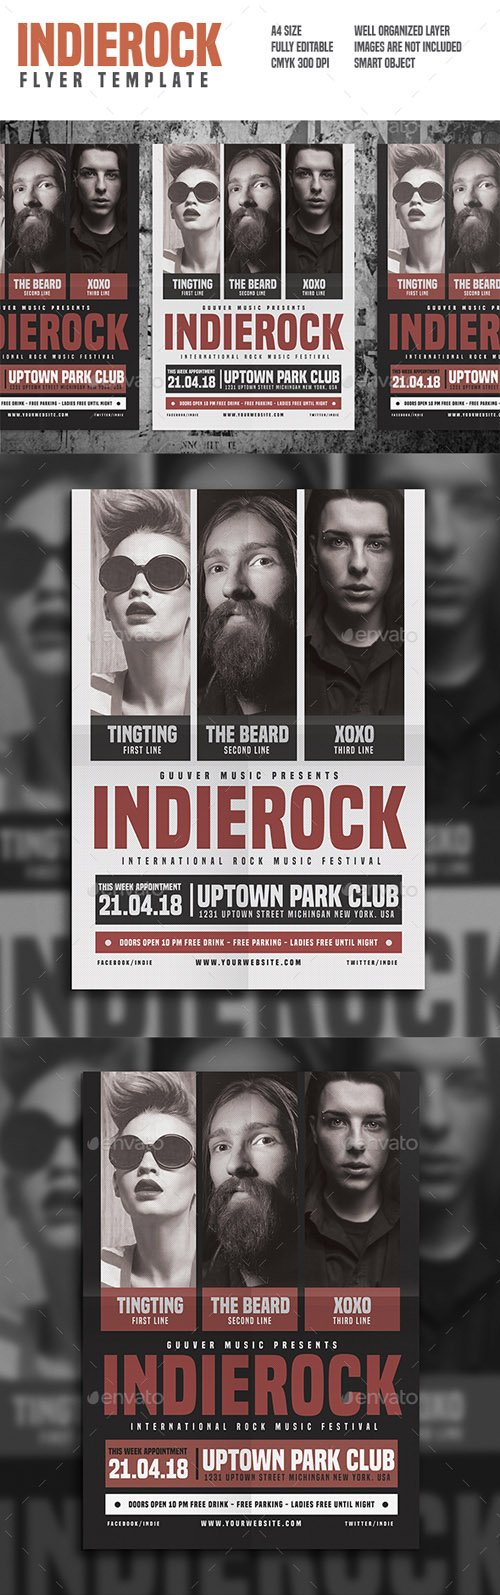 Indie Rock Flyer 16170484